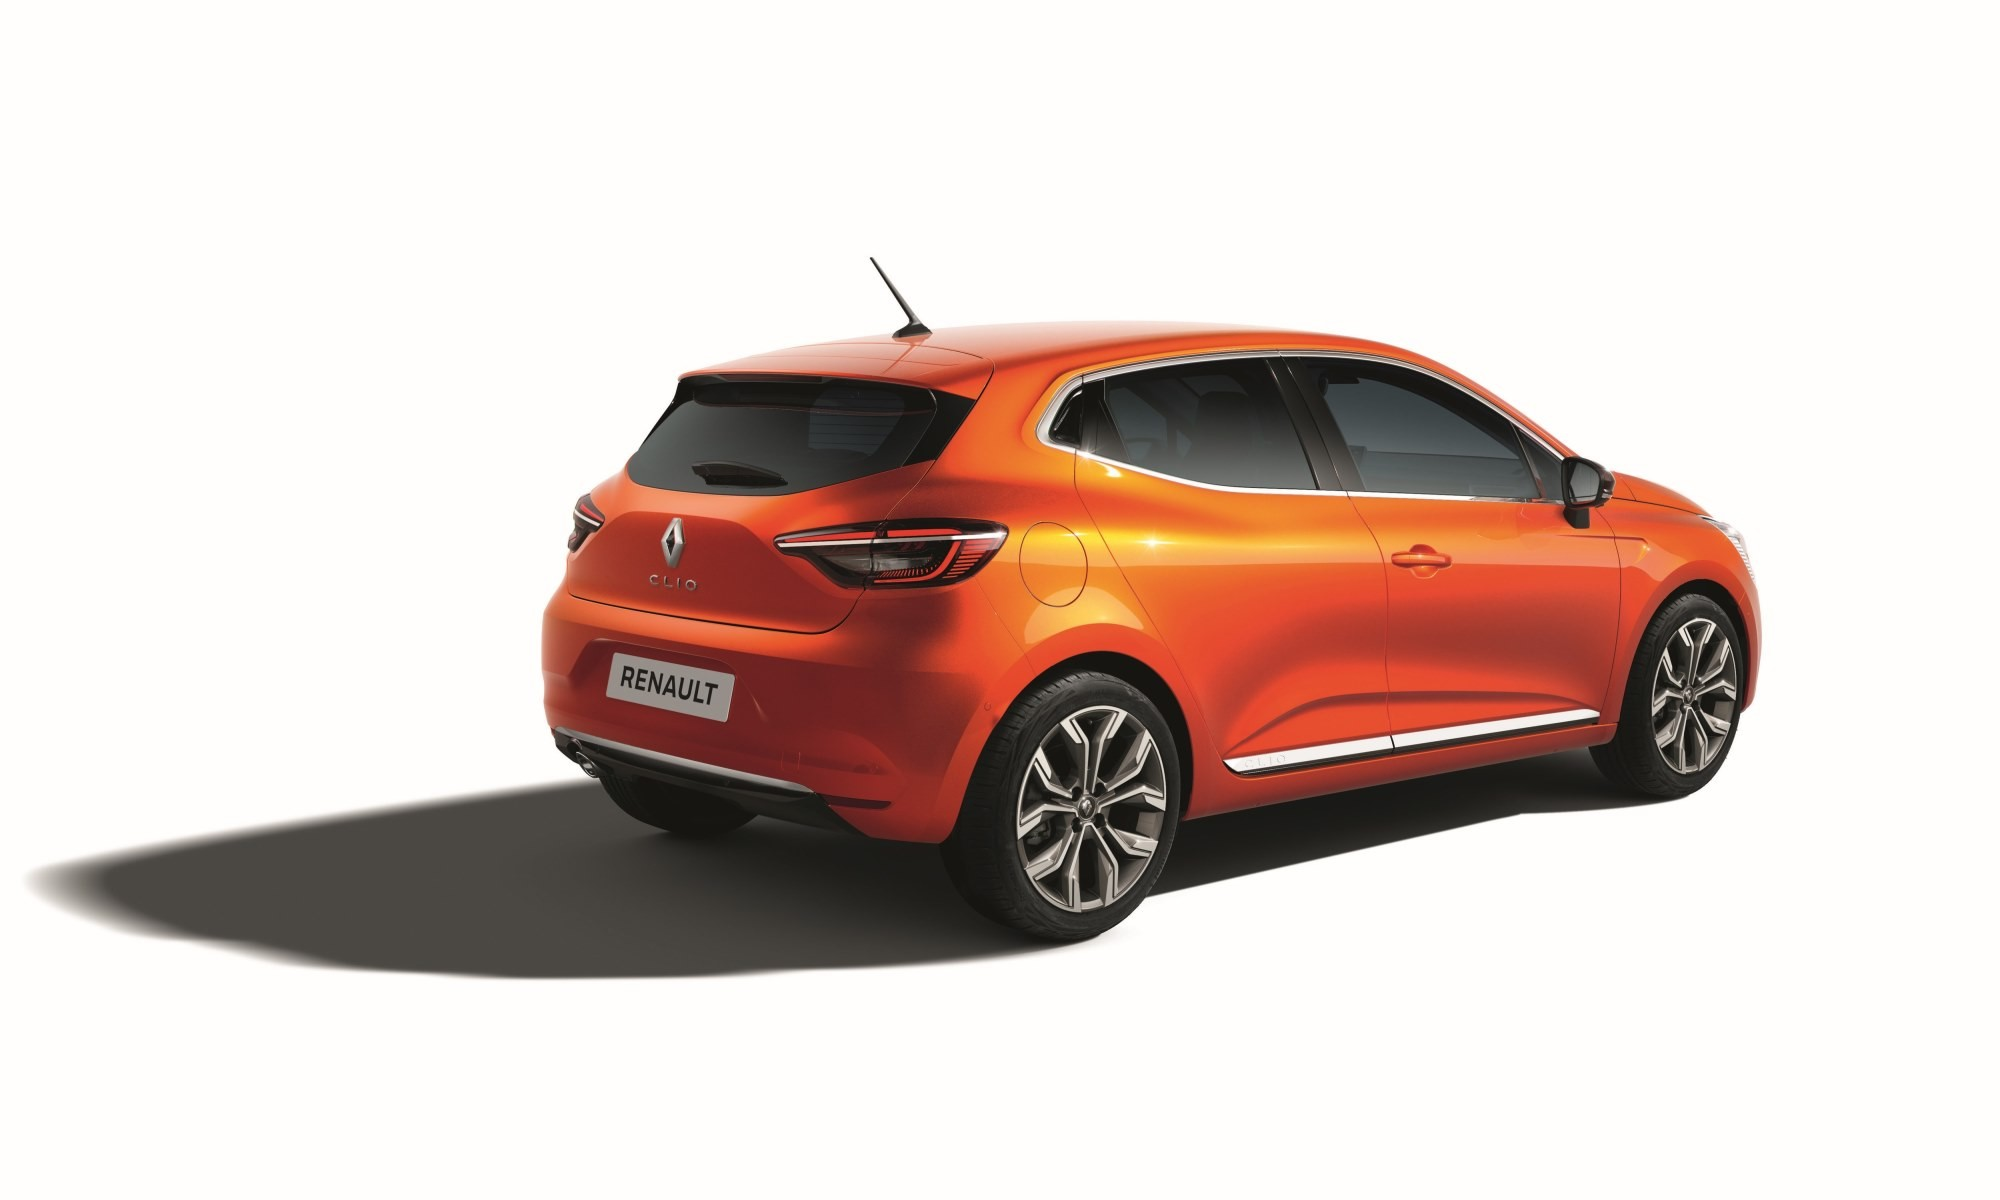 New Renault Clio rear